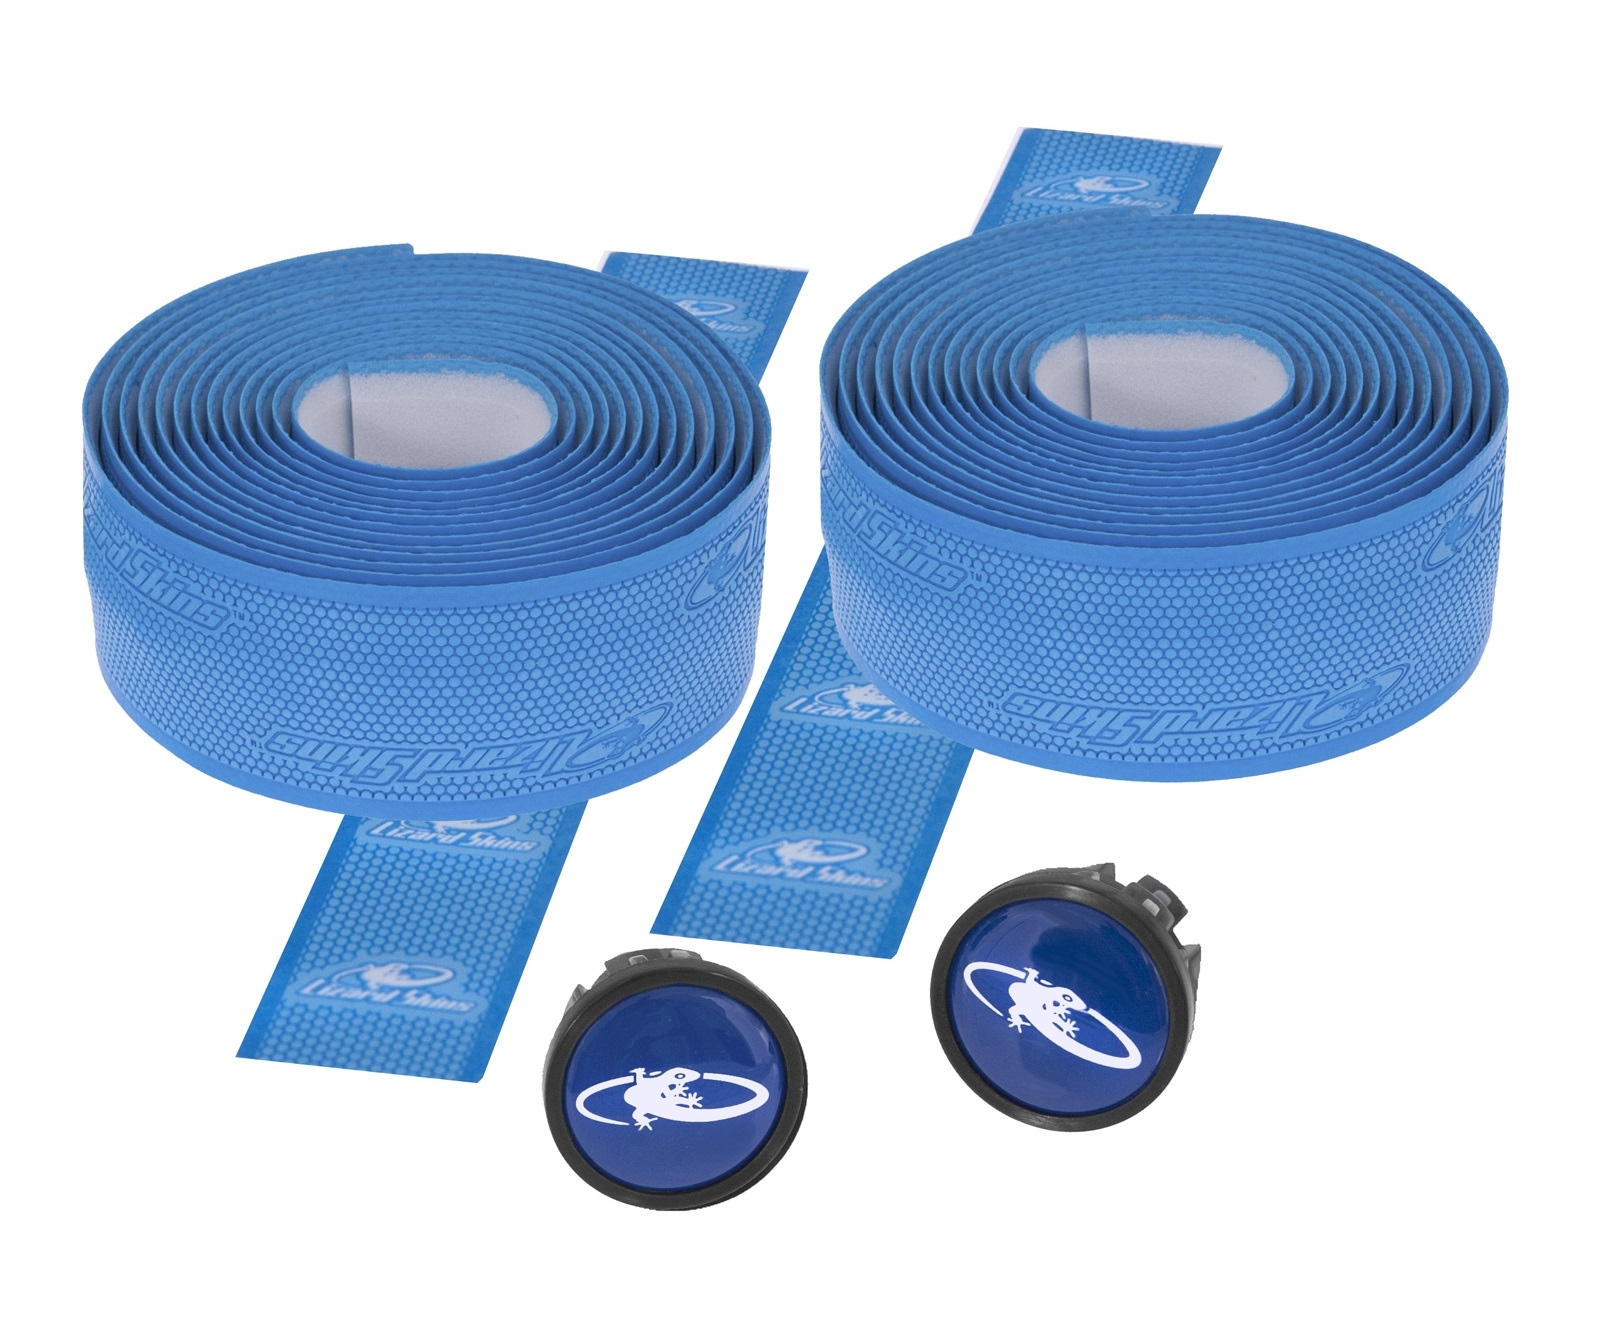 Lizardskins DSP 1.8 Handlebar Tape 1.8x208mm - Blue